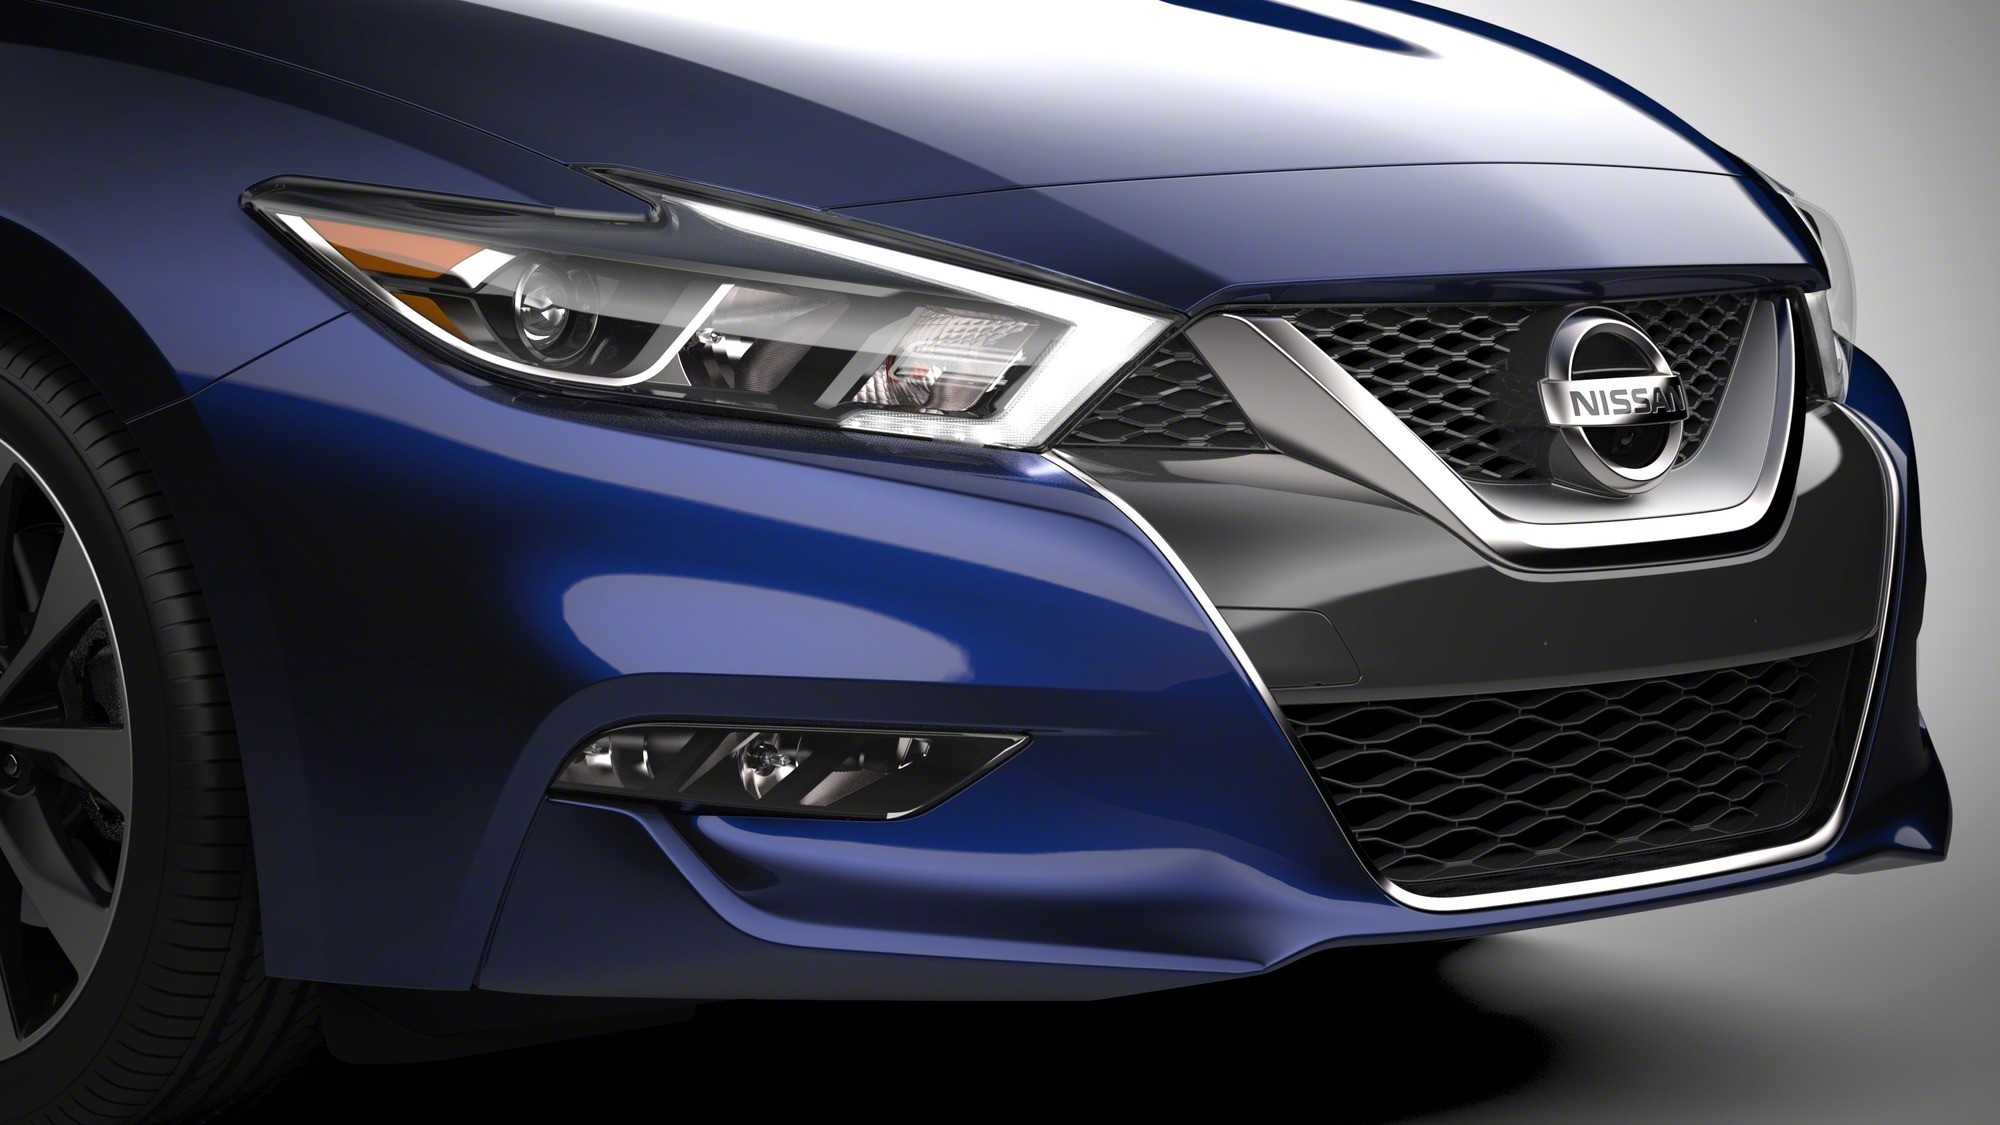 2019 Nissan Maxima Facelifted Just In Time For Los Angeles ...